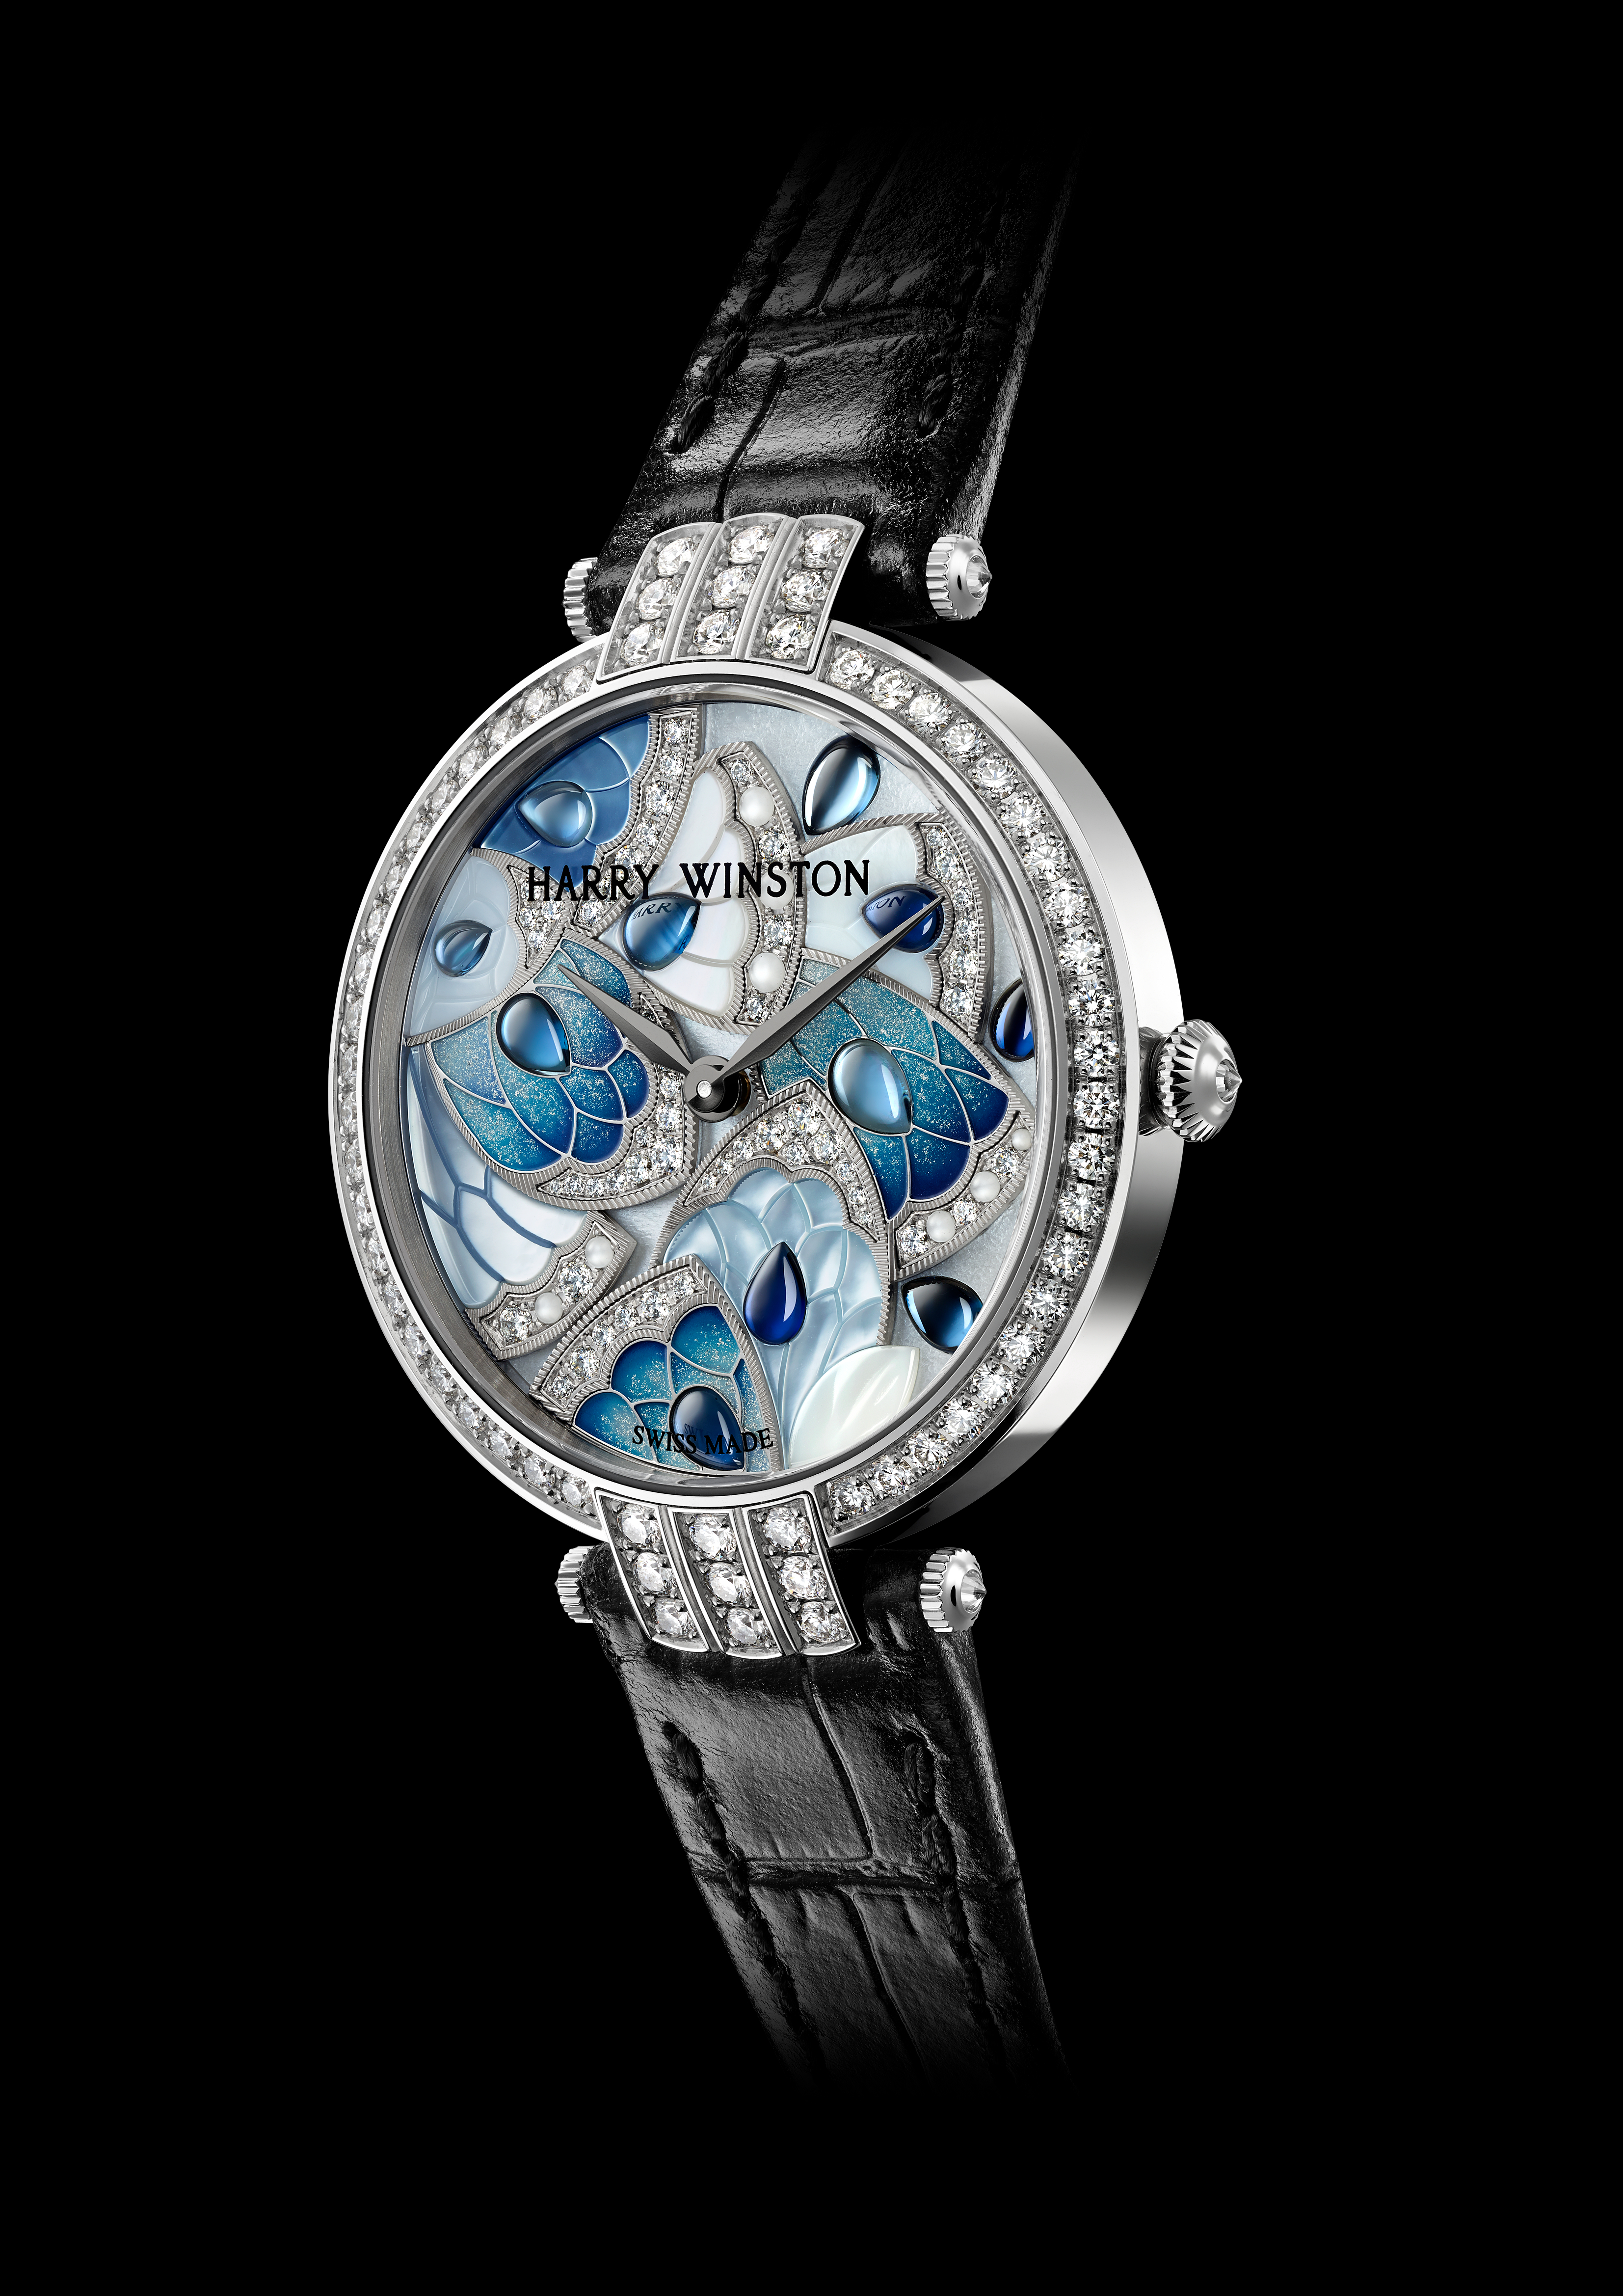 Harry Winston Baselworld 4